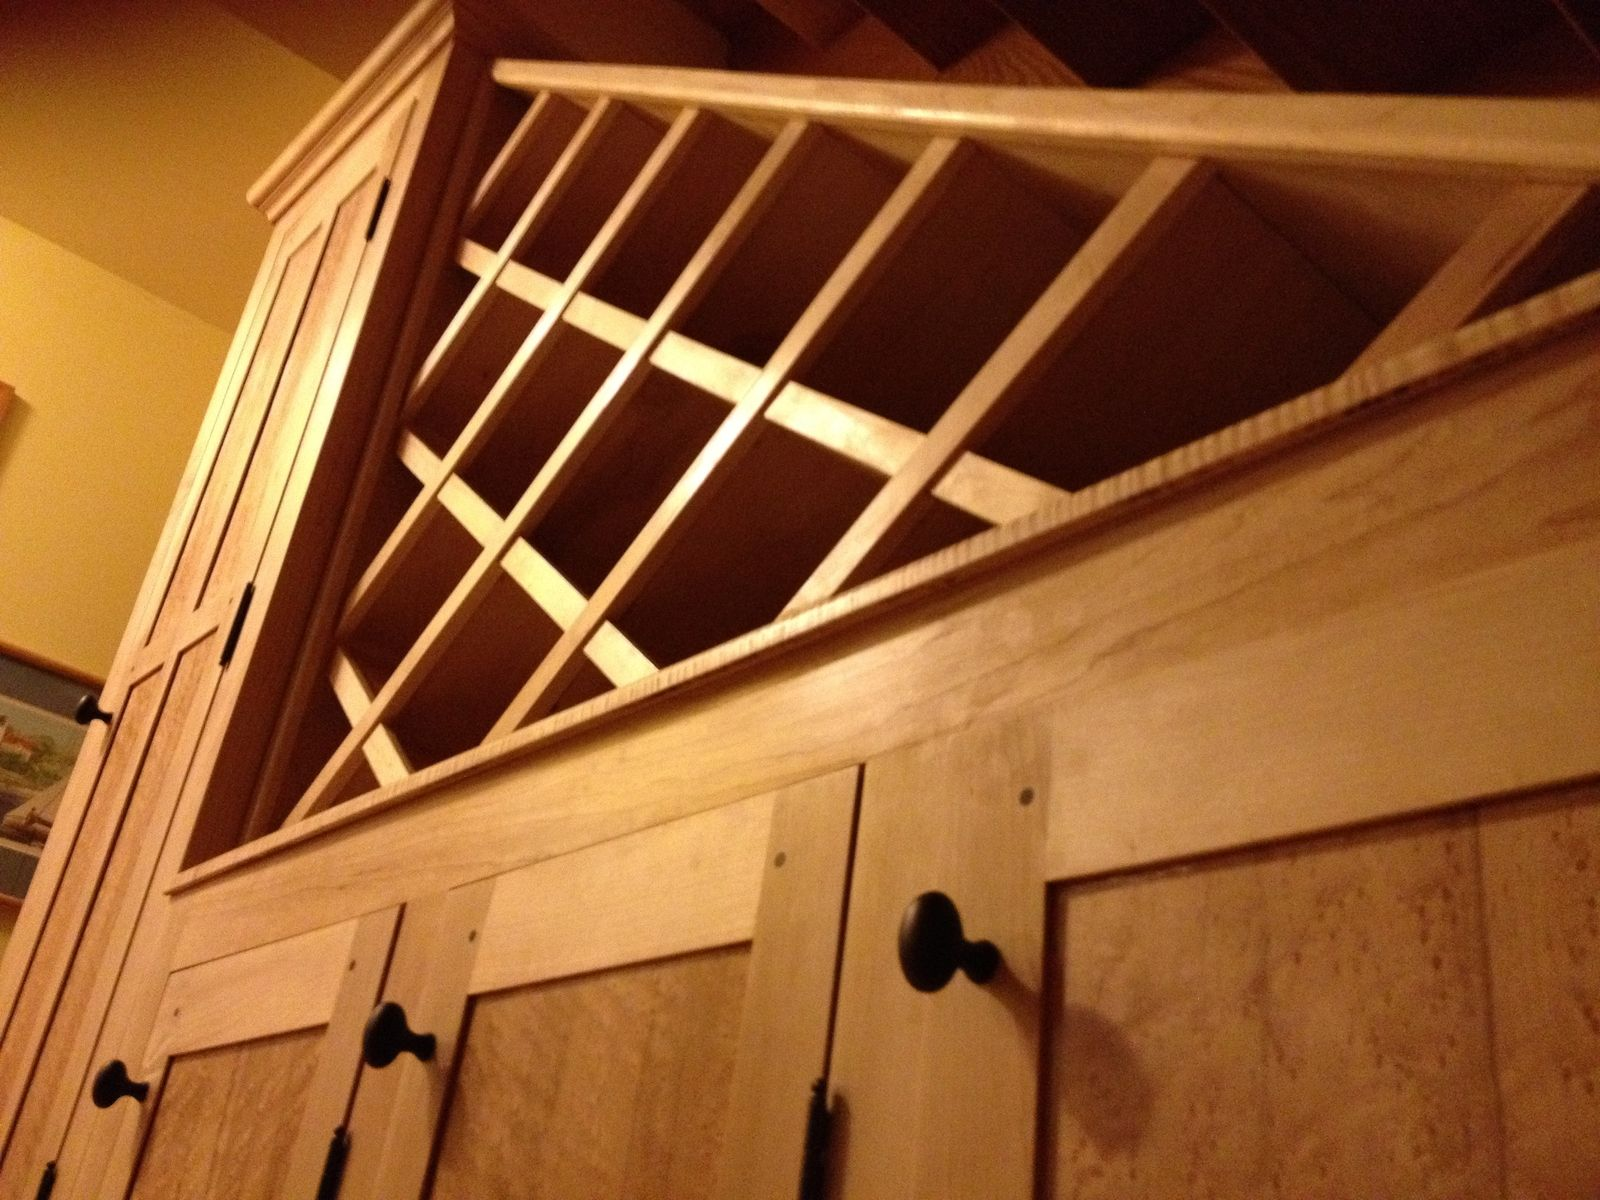 Hand crafted custom handcrafted wall cabinet wine rack for Building a wine rack in a cabinet